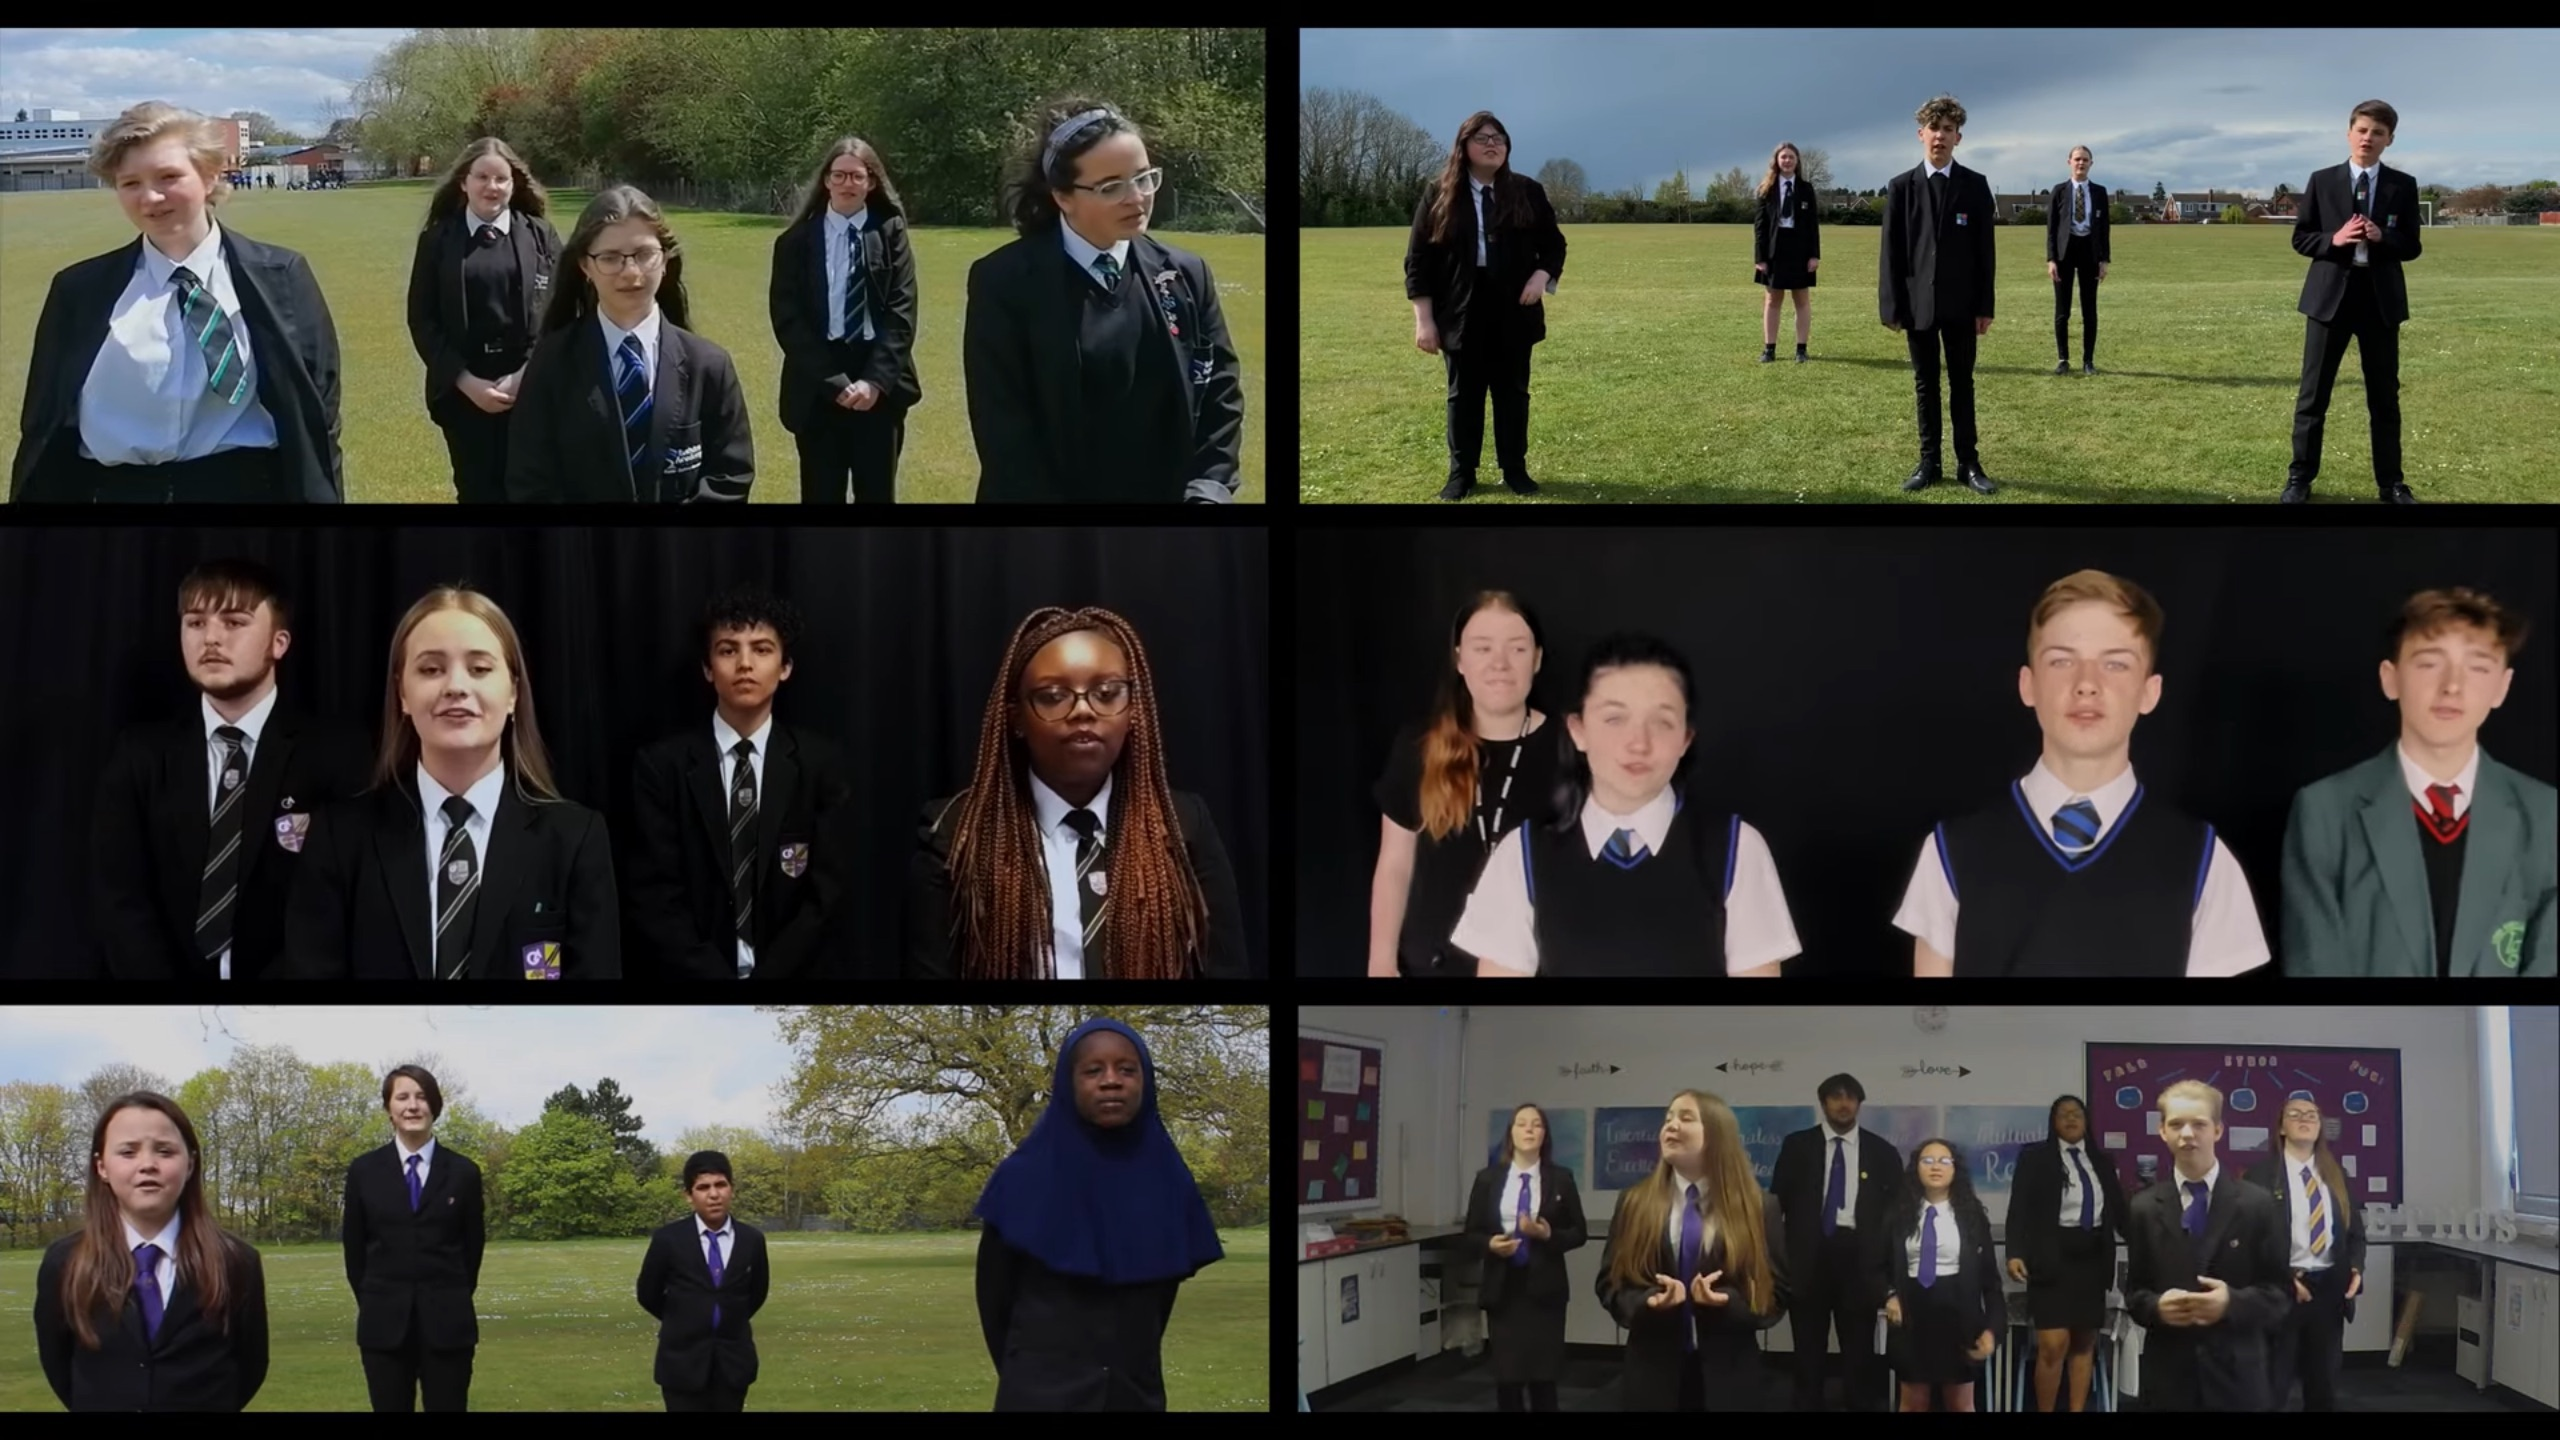 STUDENTS FROM 6 ACADEMY SCHOOLS RELEASE COLLECTIVE CHARITY SINGLE COVER OF 'TOGETHER'